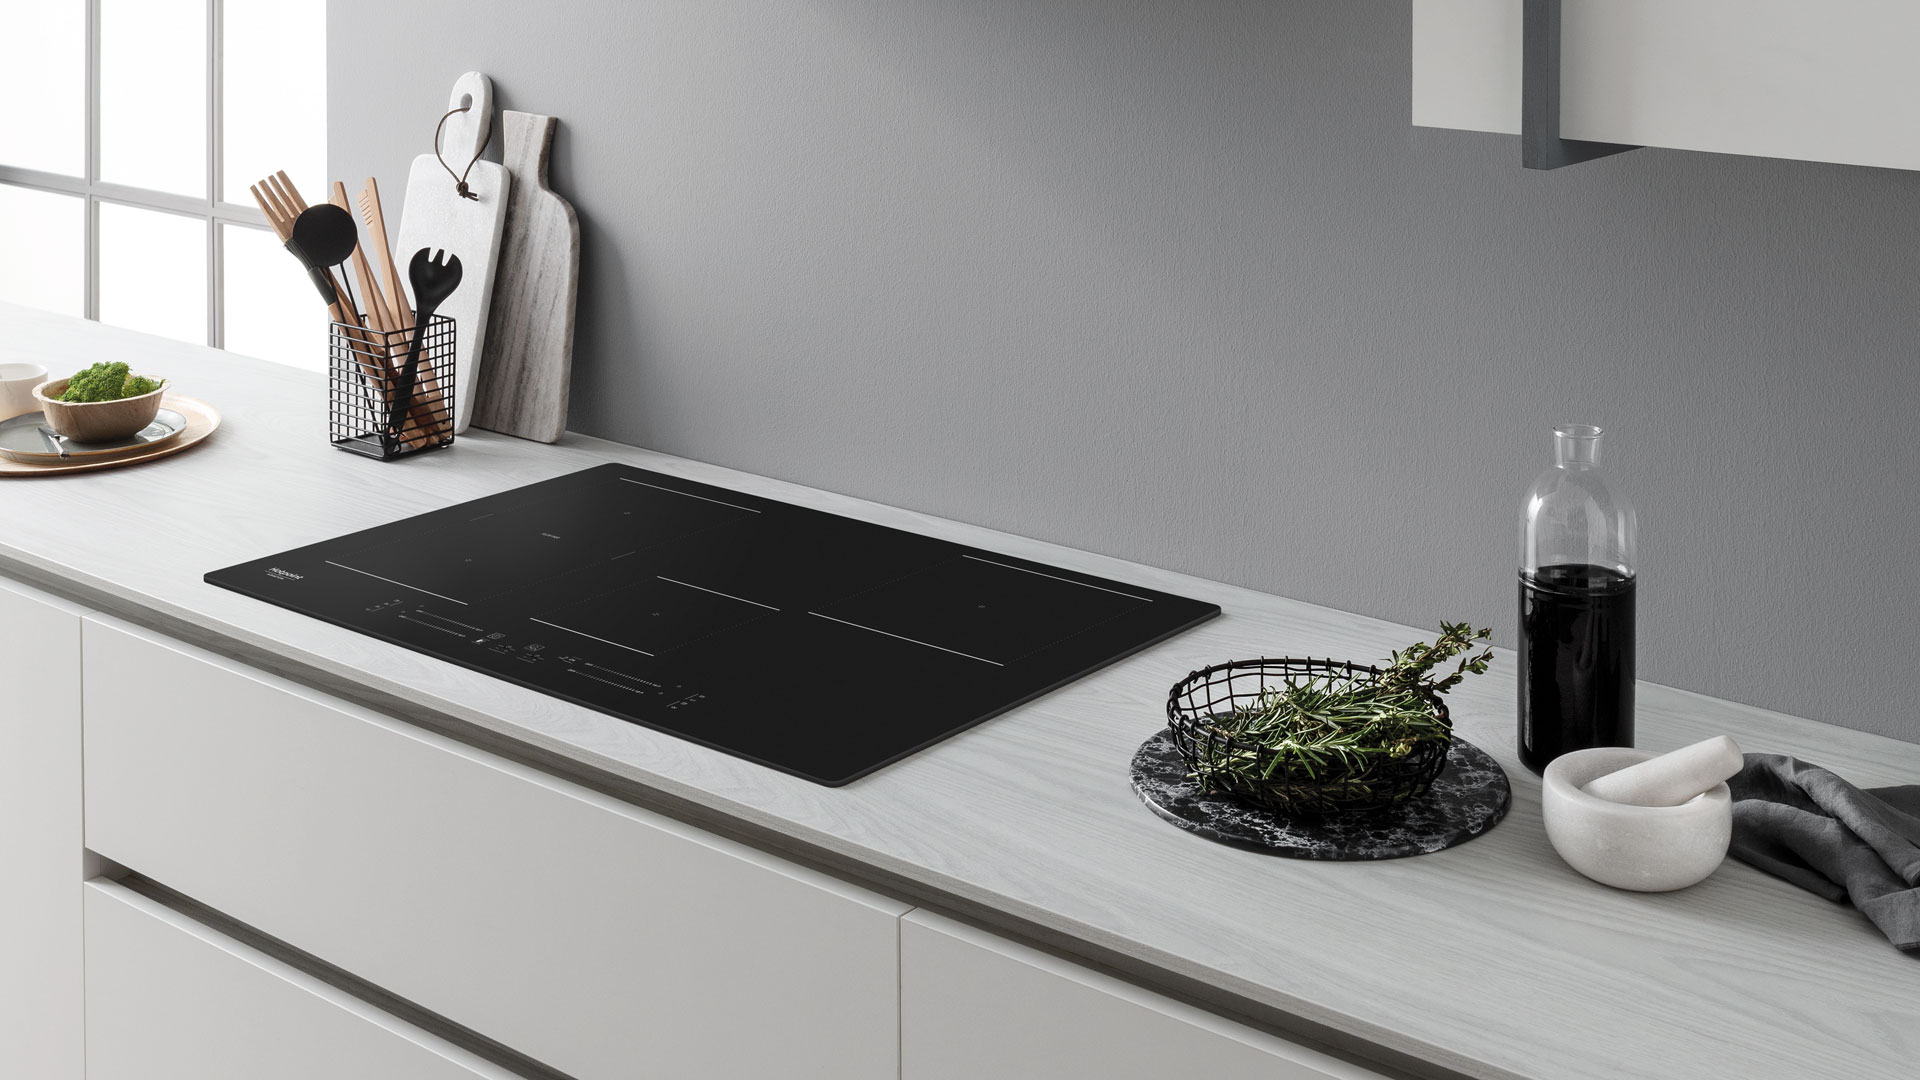 Try a new way of cooking with the Active induction hobs by Hotpoint - Cucine LUBE